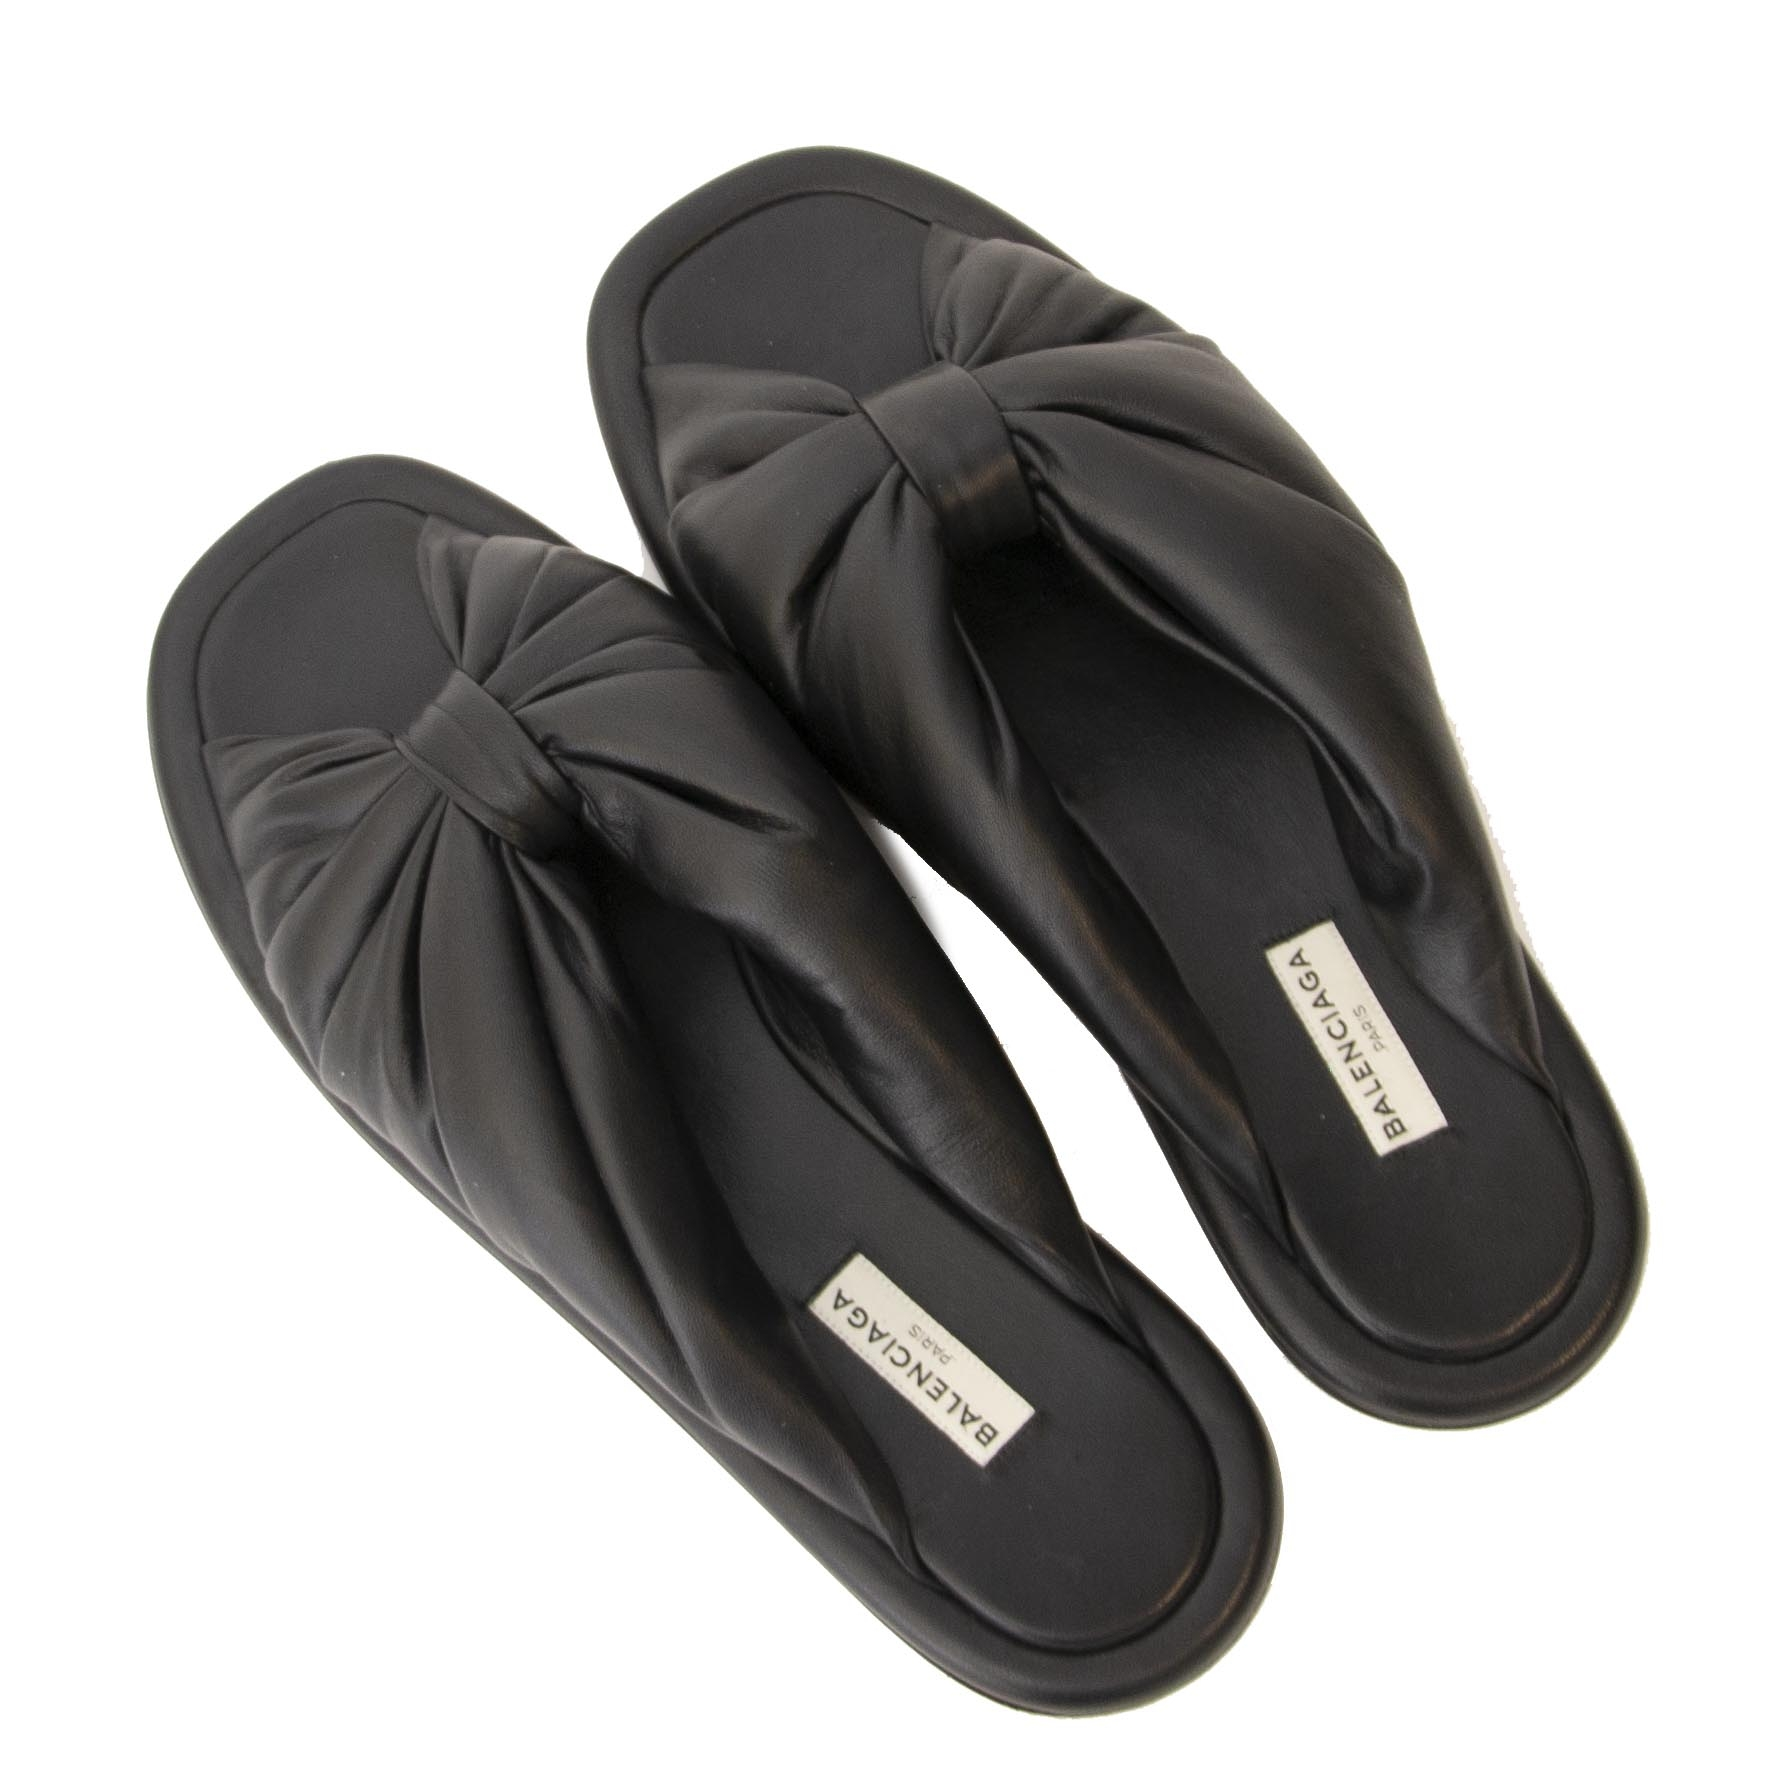 Buy authentic secondhand Balenciaga slippers at the right price at Labellov.